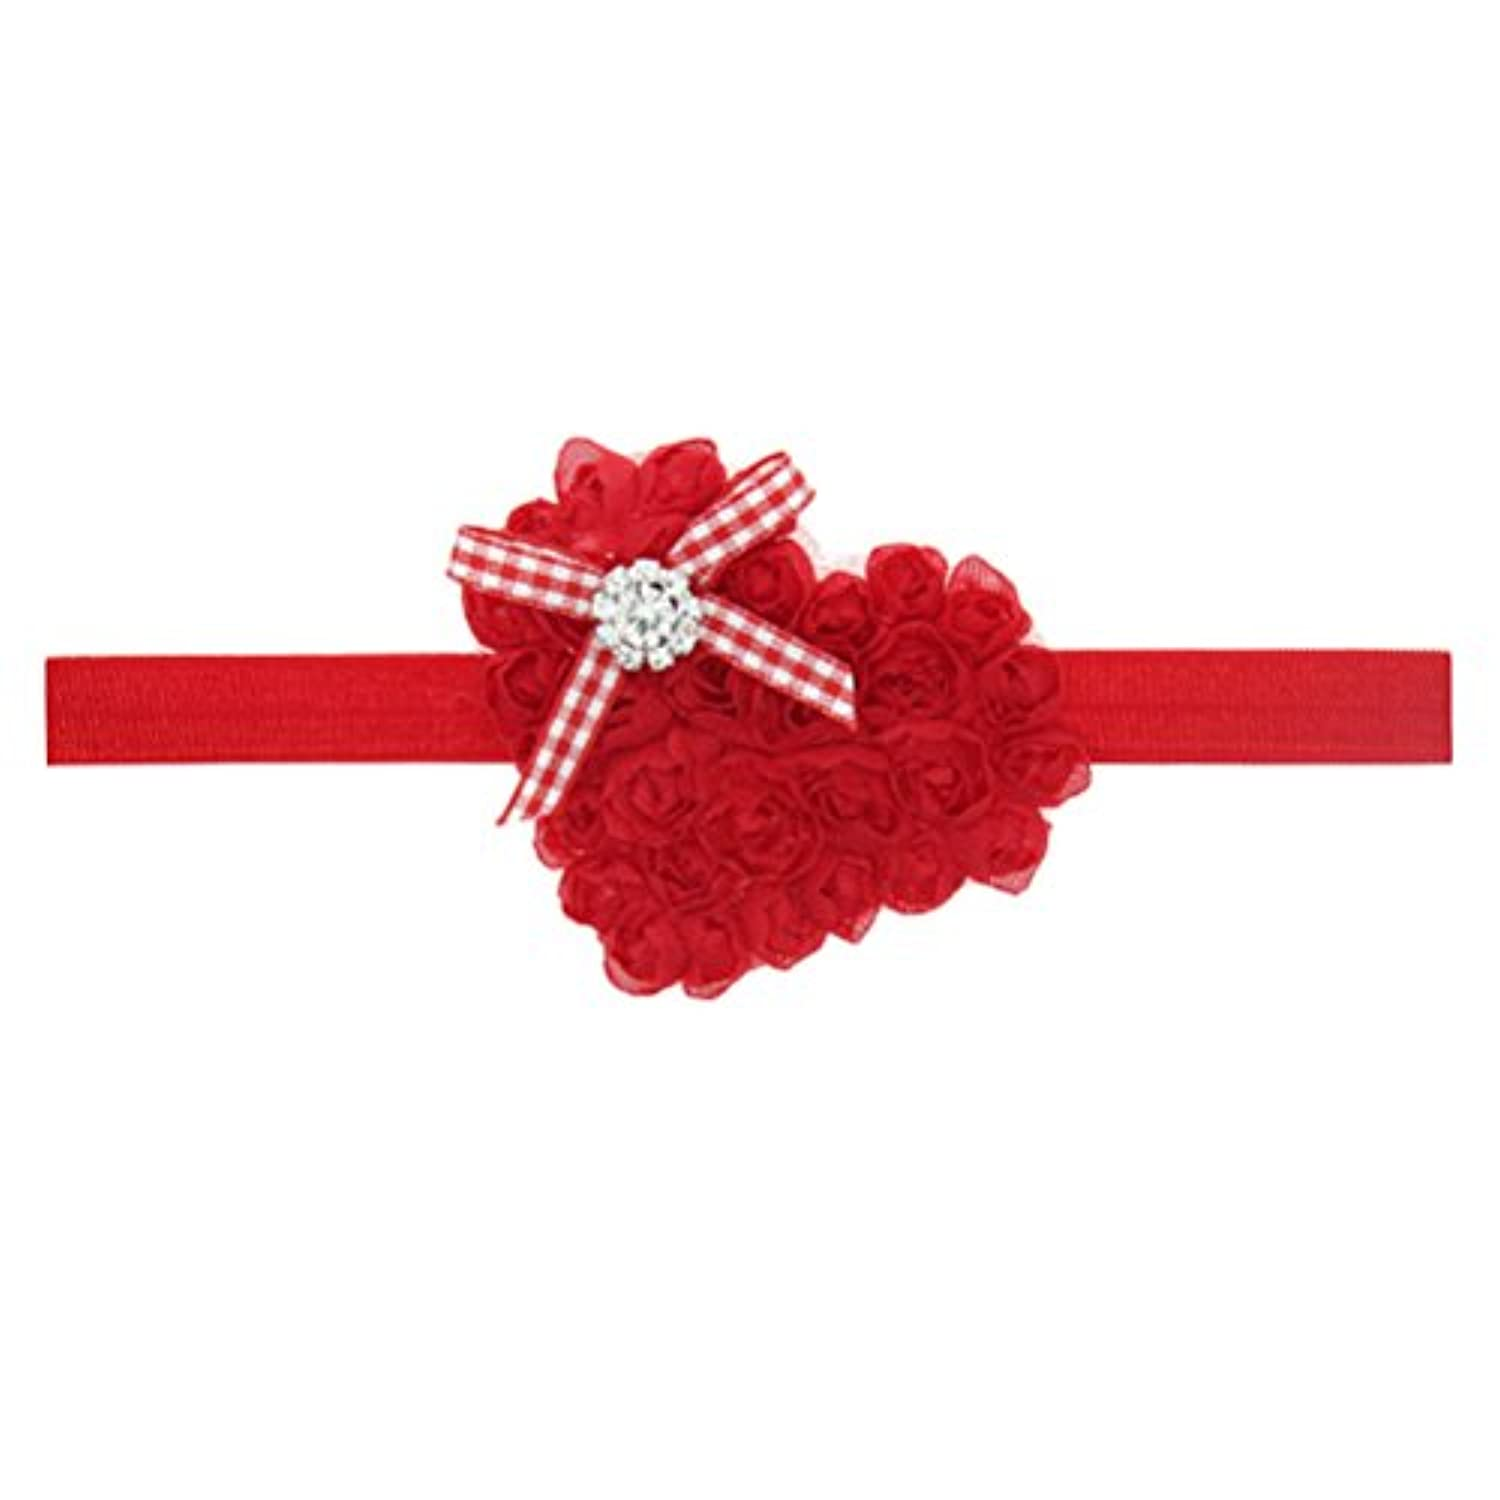 Zhhlaixing ベビー小物 Baby Girls Hairband Heart-shaped Embroidery Headband Flower Hair Accessories for Christmas